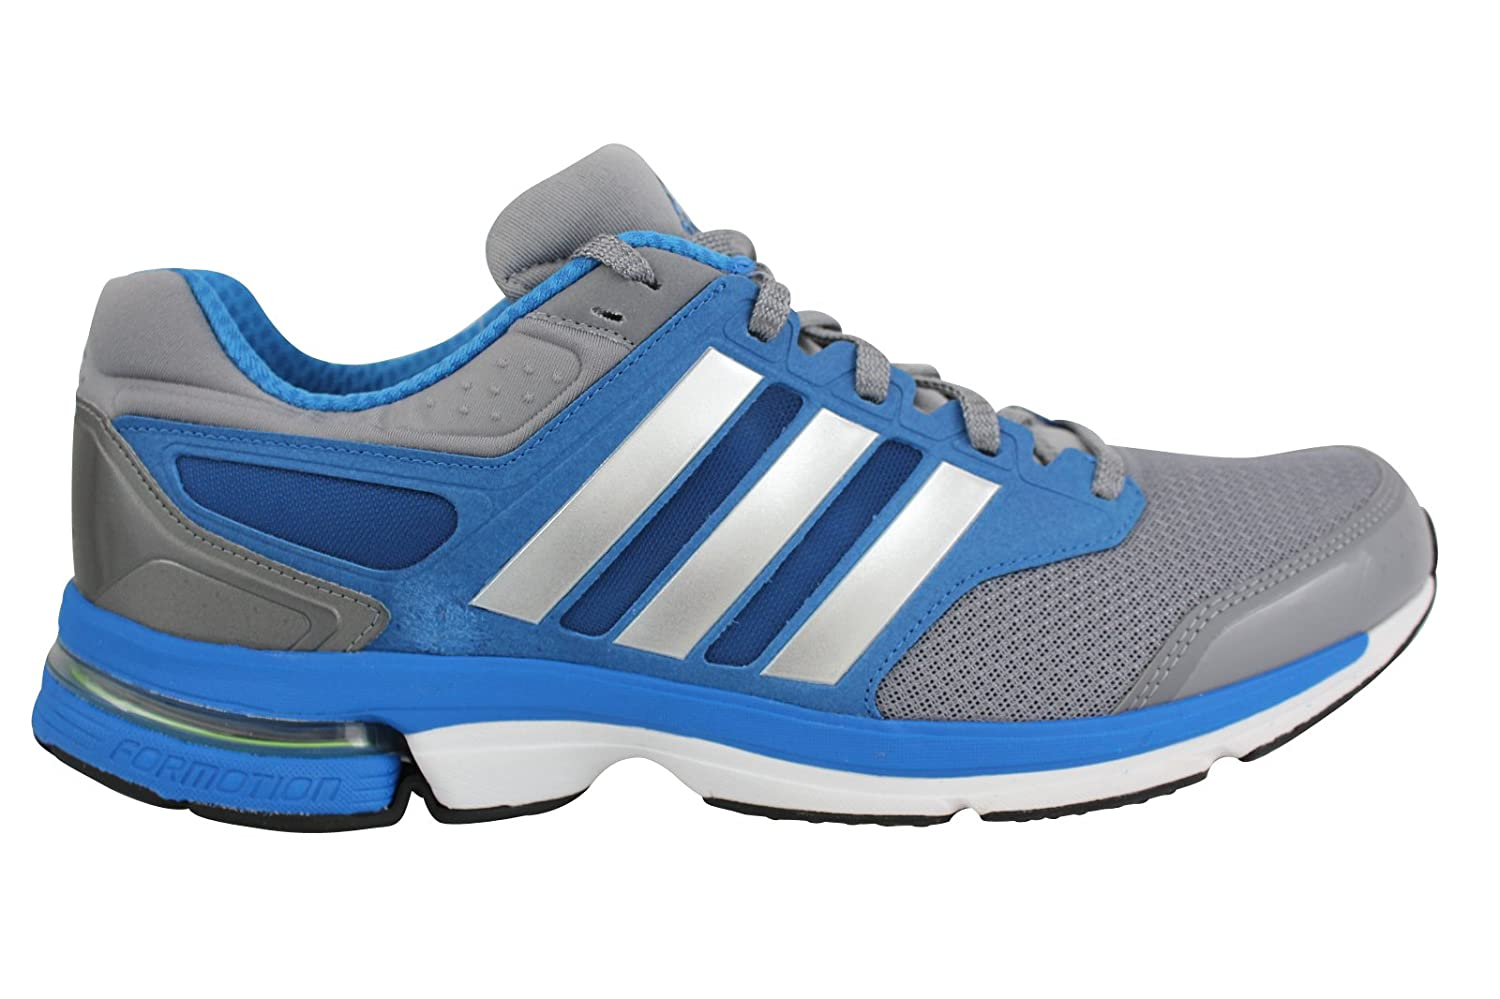 Adidas Supernova Solution 3 M running shoes trainers UK 6.5